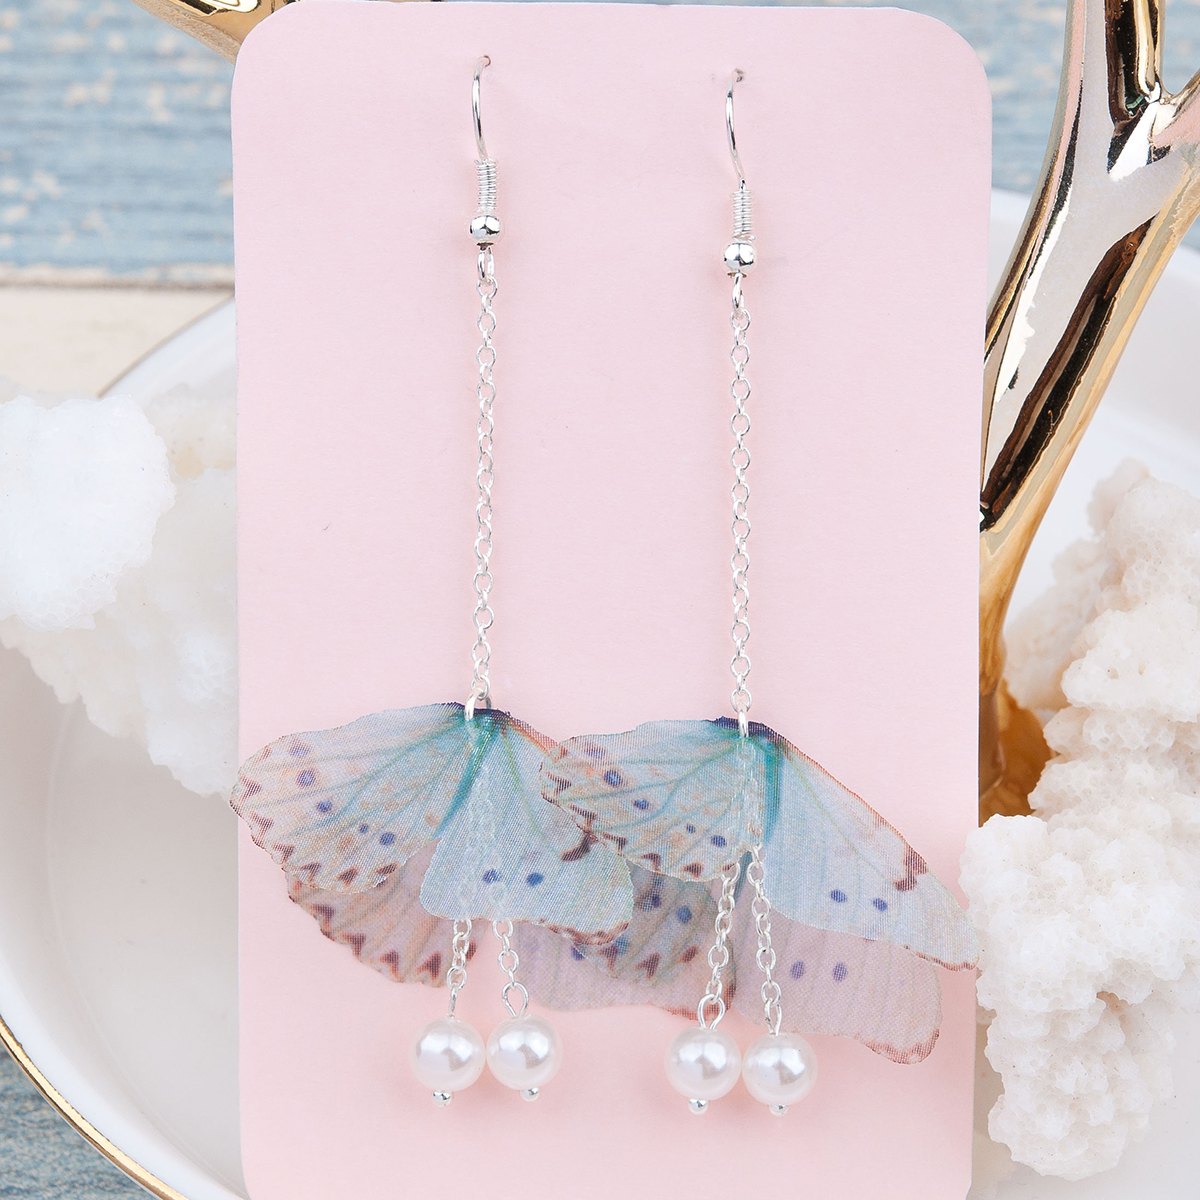 Doreen Box Organza Ethereal Butterfly font b Earrings b font Silver color Green Blue Created Pearl